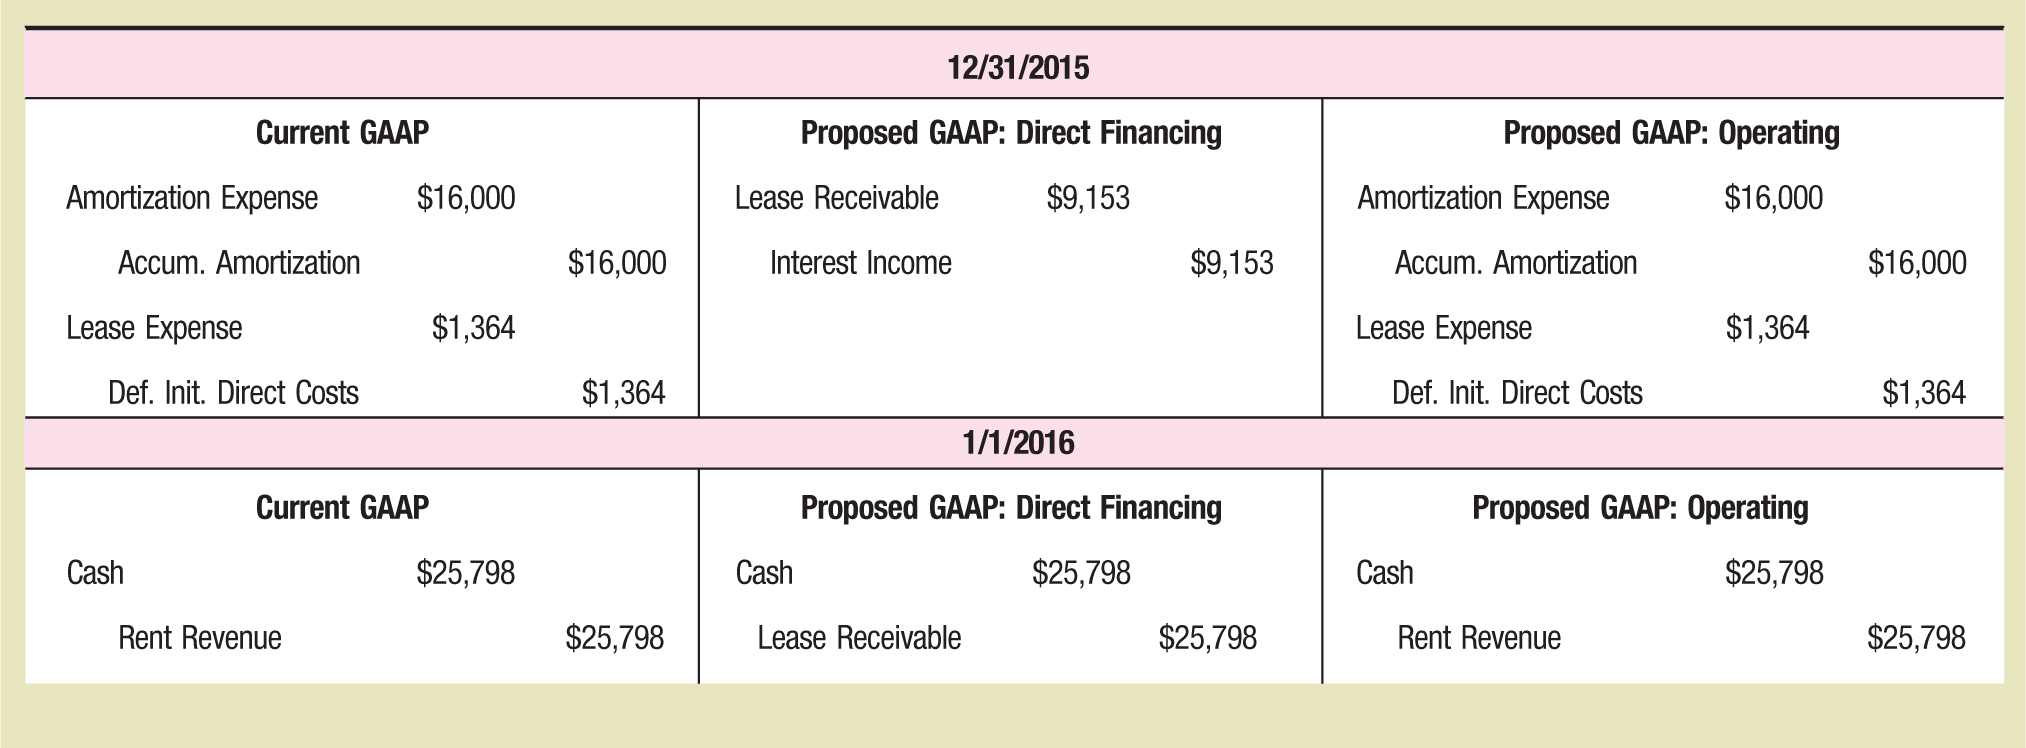 12/31/2015 Current GAAP Proposed GAAP: Direct Financing Proposed GAAP: Operating Amortization Expense $16,000 Lease Receivable $9,153 Amortization Expense $16,000 Accum. Amortization $16,000 Interest Income $9,153 Accum. Amortization $16,000 Lease Expense $1,364 Lease Expense $1,364 Def. Init. Direct Costs $1,364 Def. Init. Direct Costs $1,364 1/1/2016 Current GAAP Proposed GAAP: Direct Financing Proposed GAAP: Operating Cash $25,798 Cash $25,798 Cash $25,798 Rent Revenue $25,798 Lease Receivable $25,798 Rent Revenue $25,798